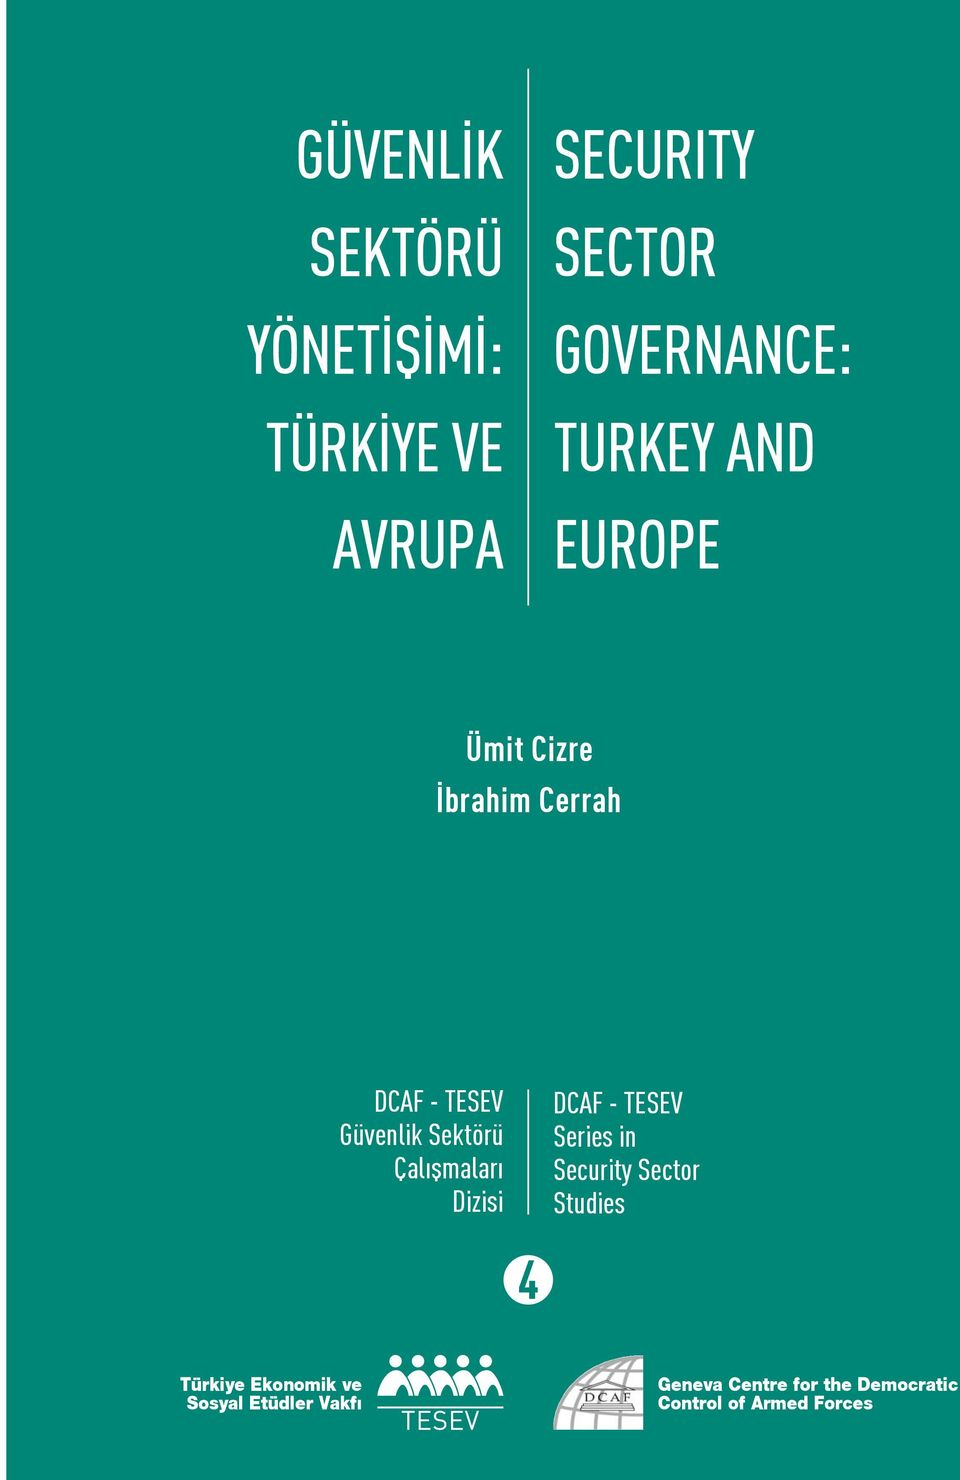 flmalar Dizisi DCAF - TESEV Series in Security Sector Studies 4 Türkiye